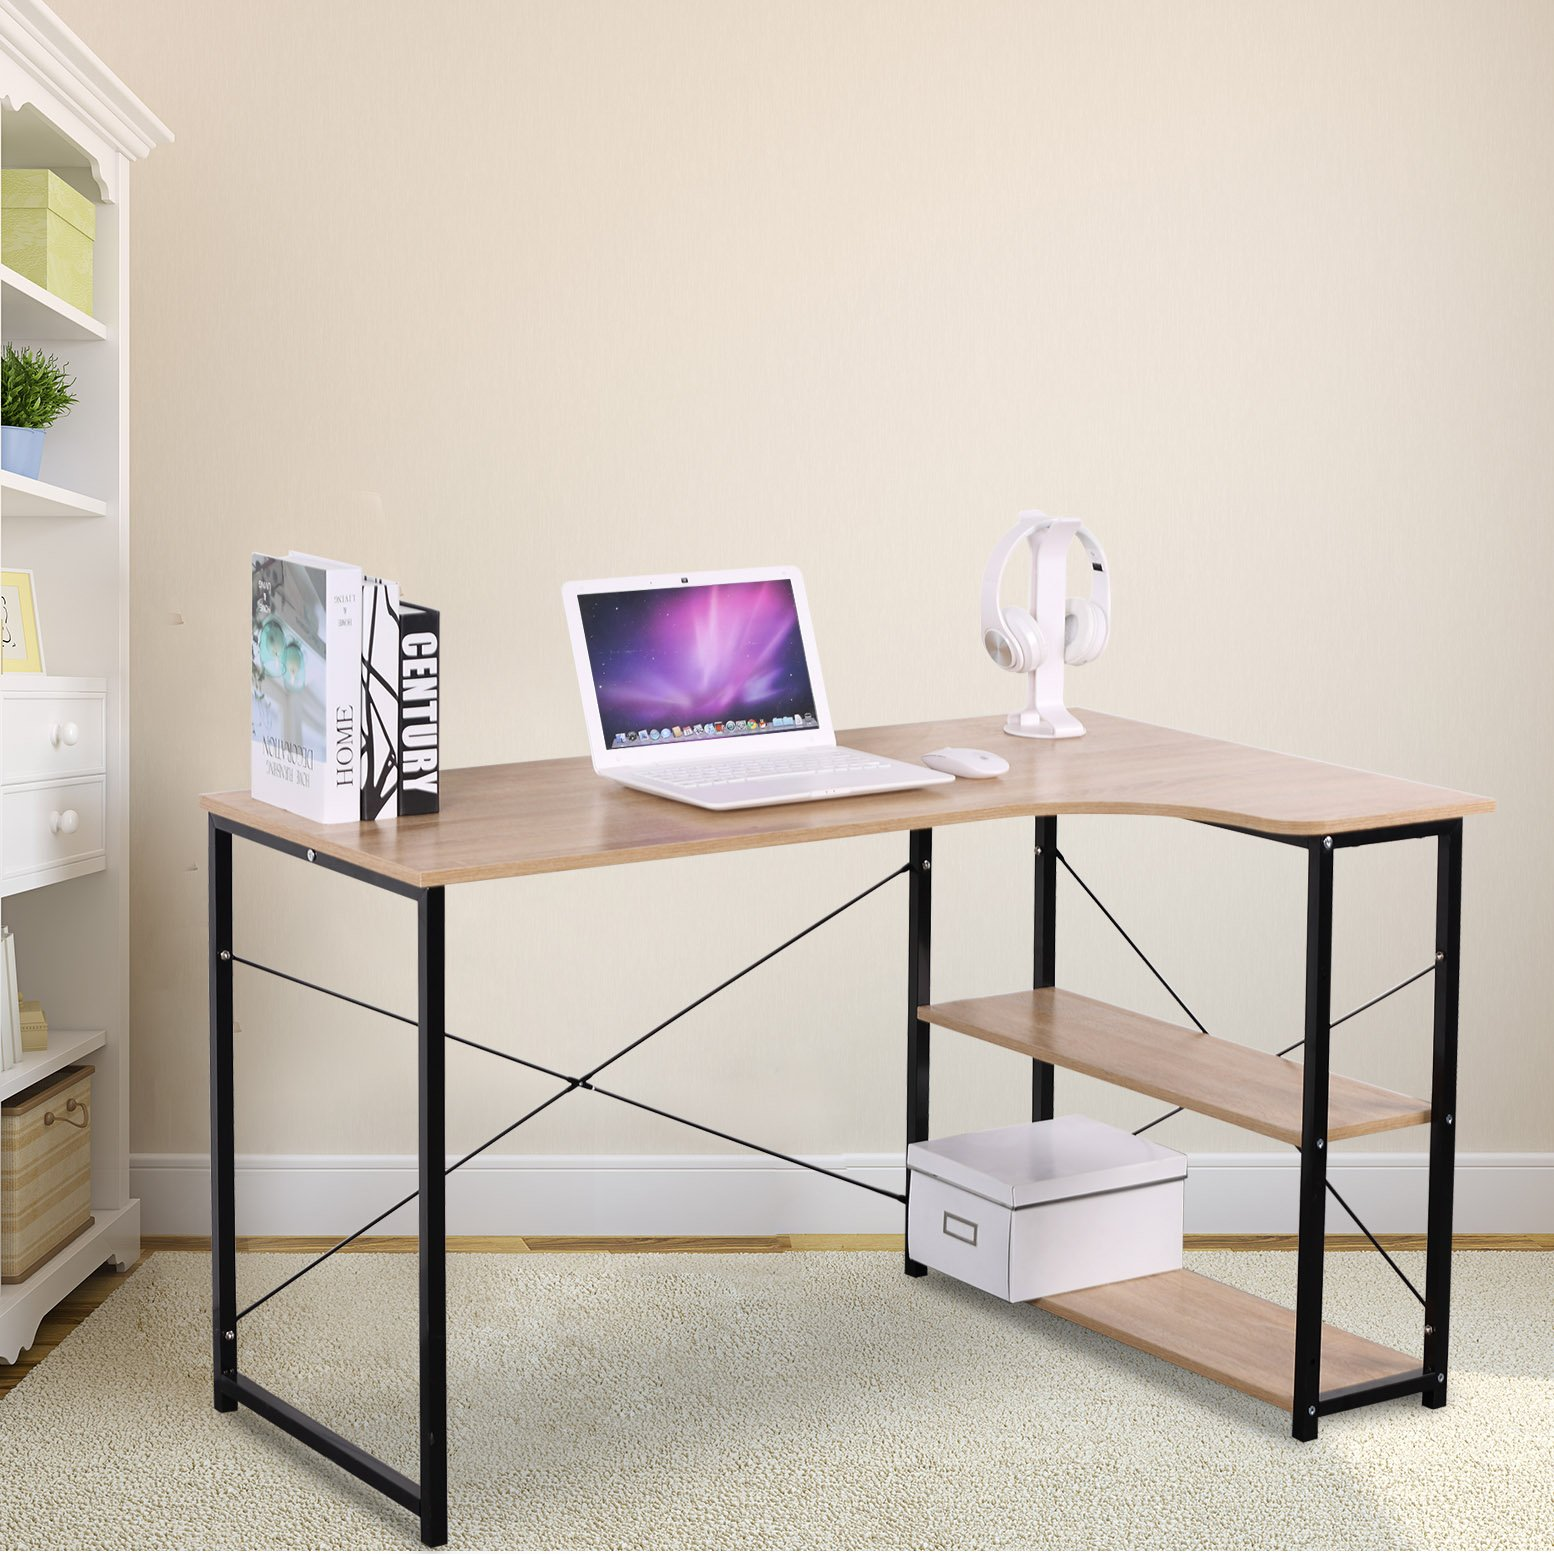 WOLTU Office Computer Desk for Small Spaces with 3 Tier Shelf Storage